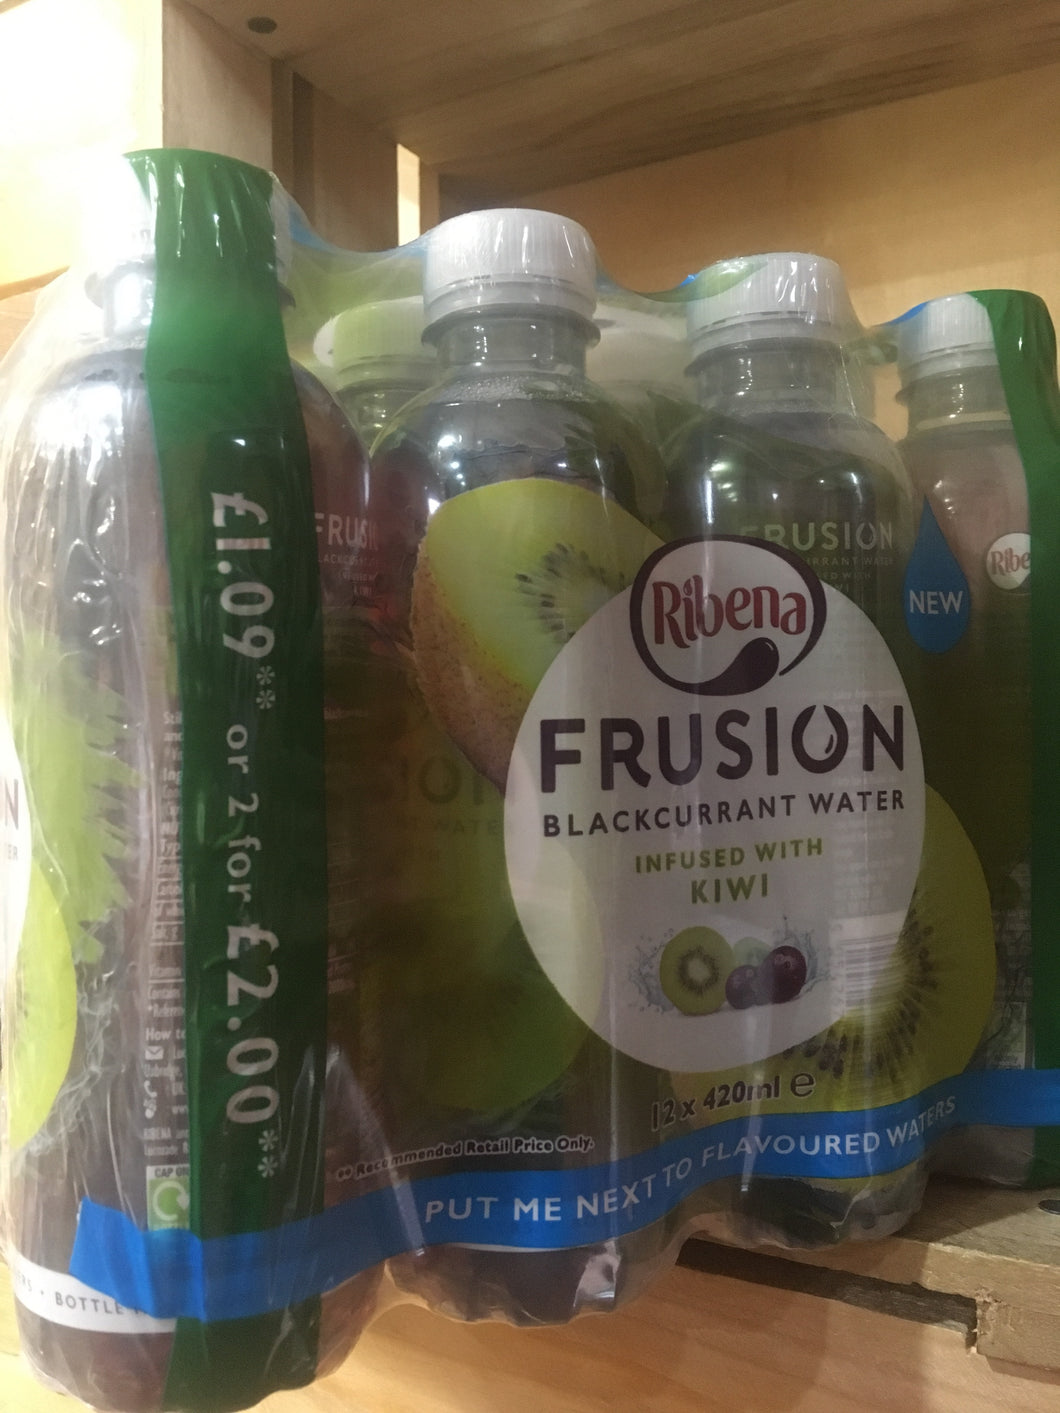 12x Ribena Frusion Blackcurrant Water Infused with Kiwi (12x420ml)